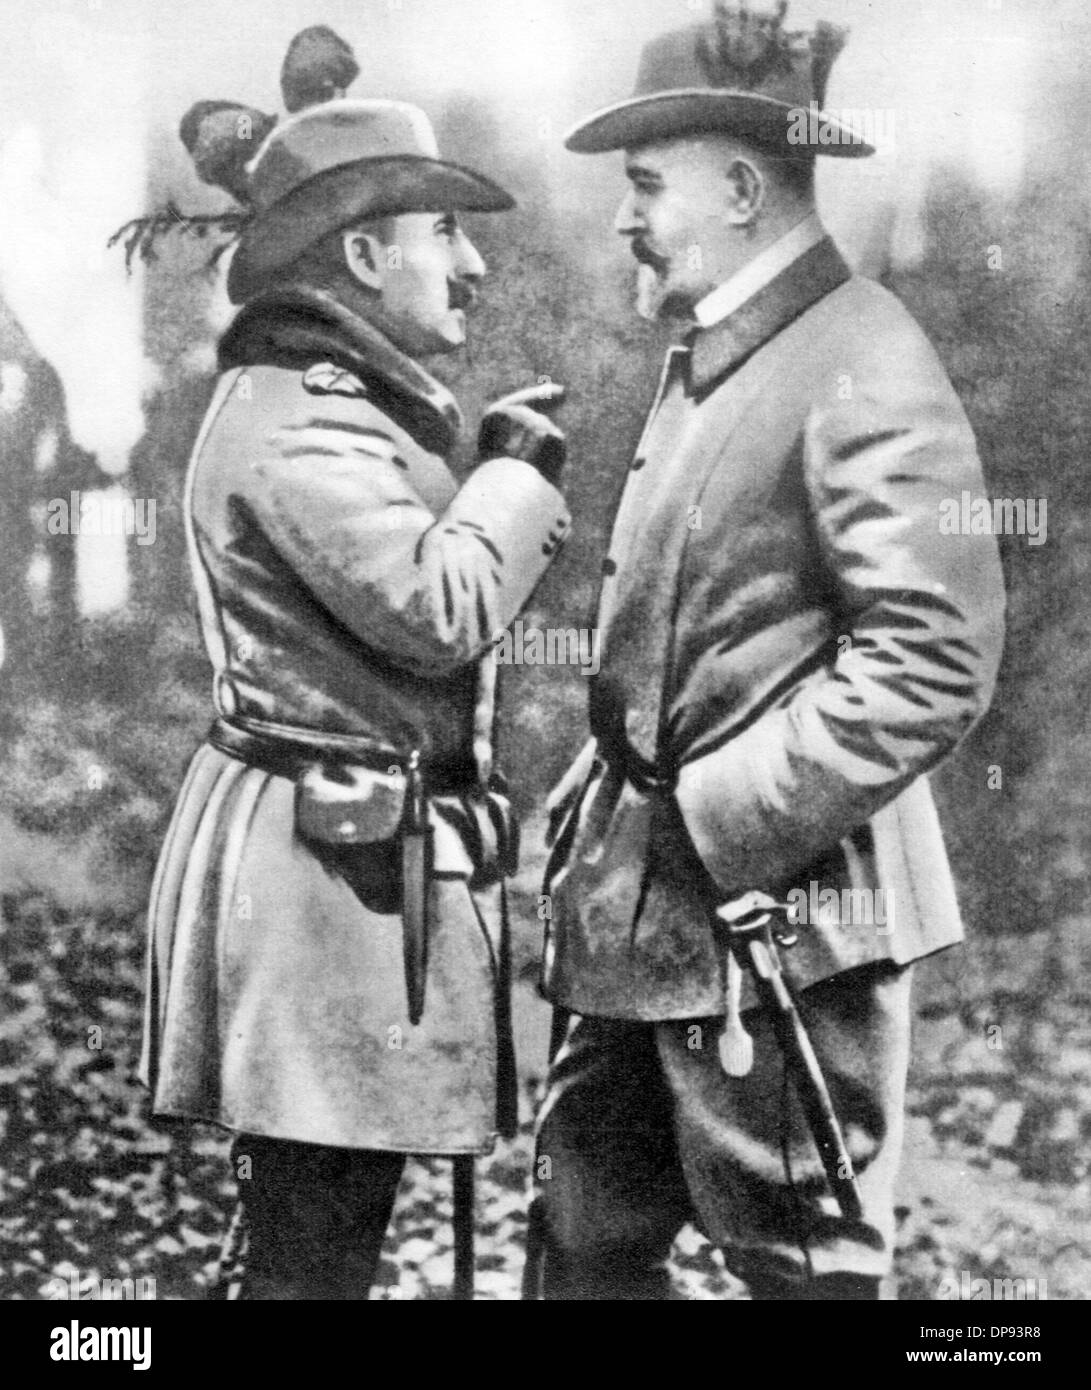 Theobald von Bethmann Hollweg (r), Chancellor of the German Empire from 1909 to 1917, talks to the German Emperor Stock Photo